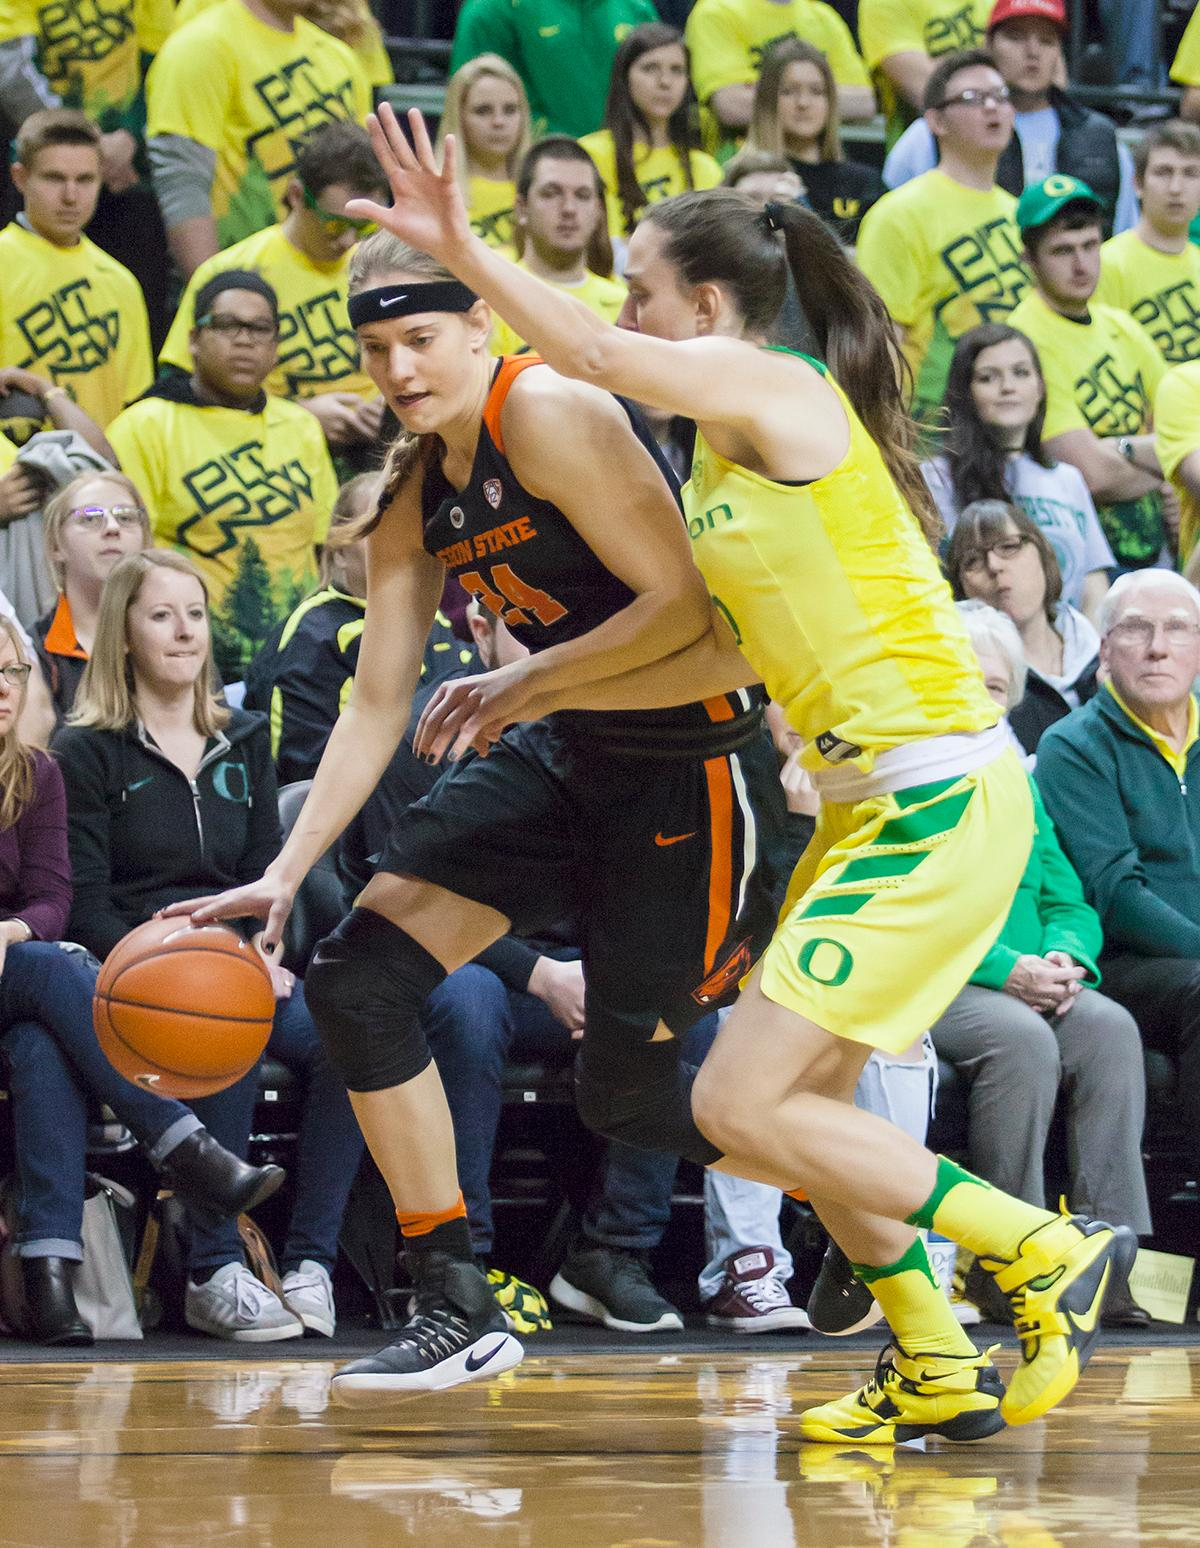 Oregon State guard Sydney Wiese (#24) edges out Oregon guard Maite Cazorla (#5). Wiese and Cazorla each racked up 12 points for their respective teams landing them among the top scorers for the game. The Oregon Ducks lost 40 to 43 against the Oregon State Beavers after a tightly matched 4th quarter. Photo by Ben Lonergan, Oregon News Lab